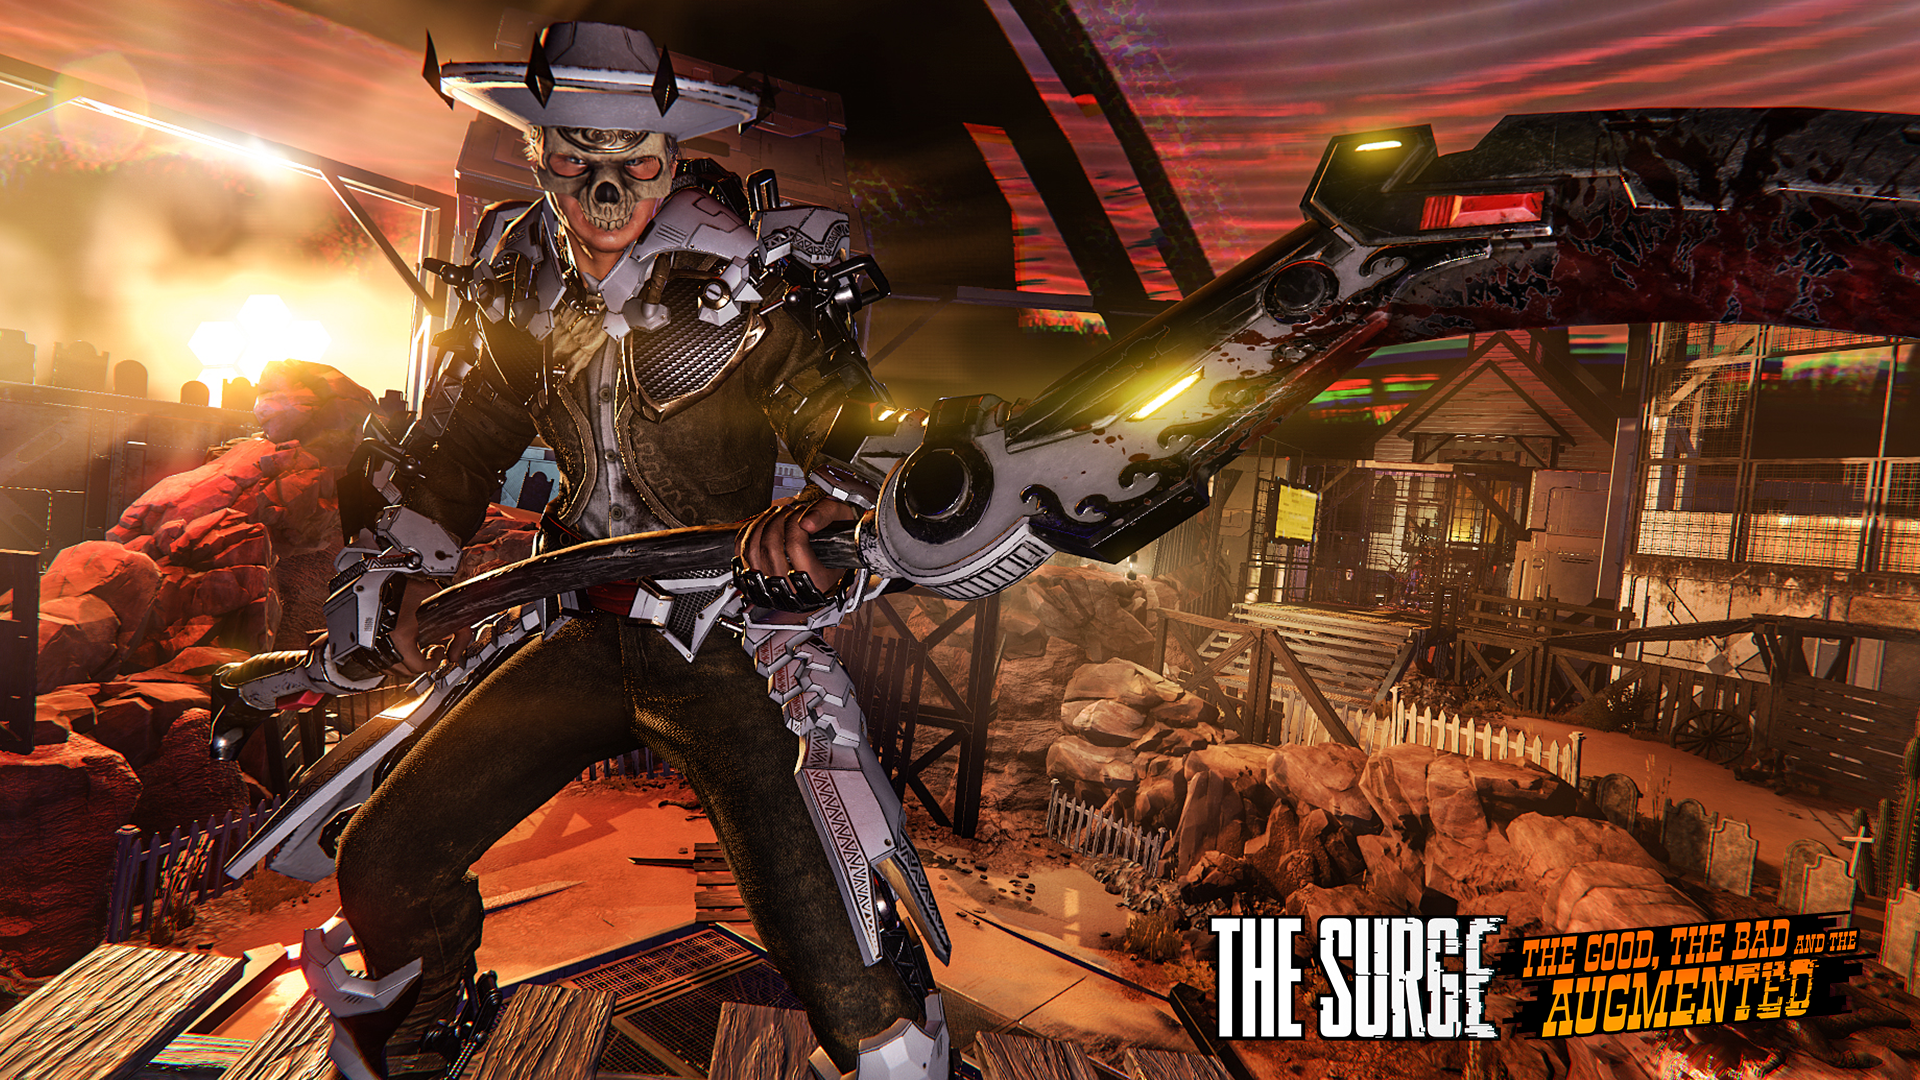 The Surge : The Good, the Bad and the Augmented Xbox One